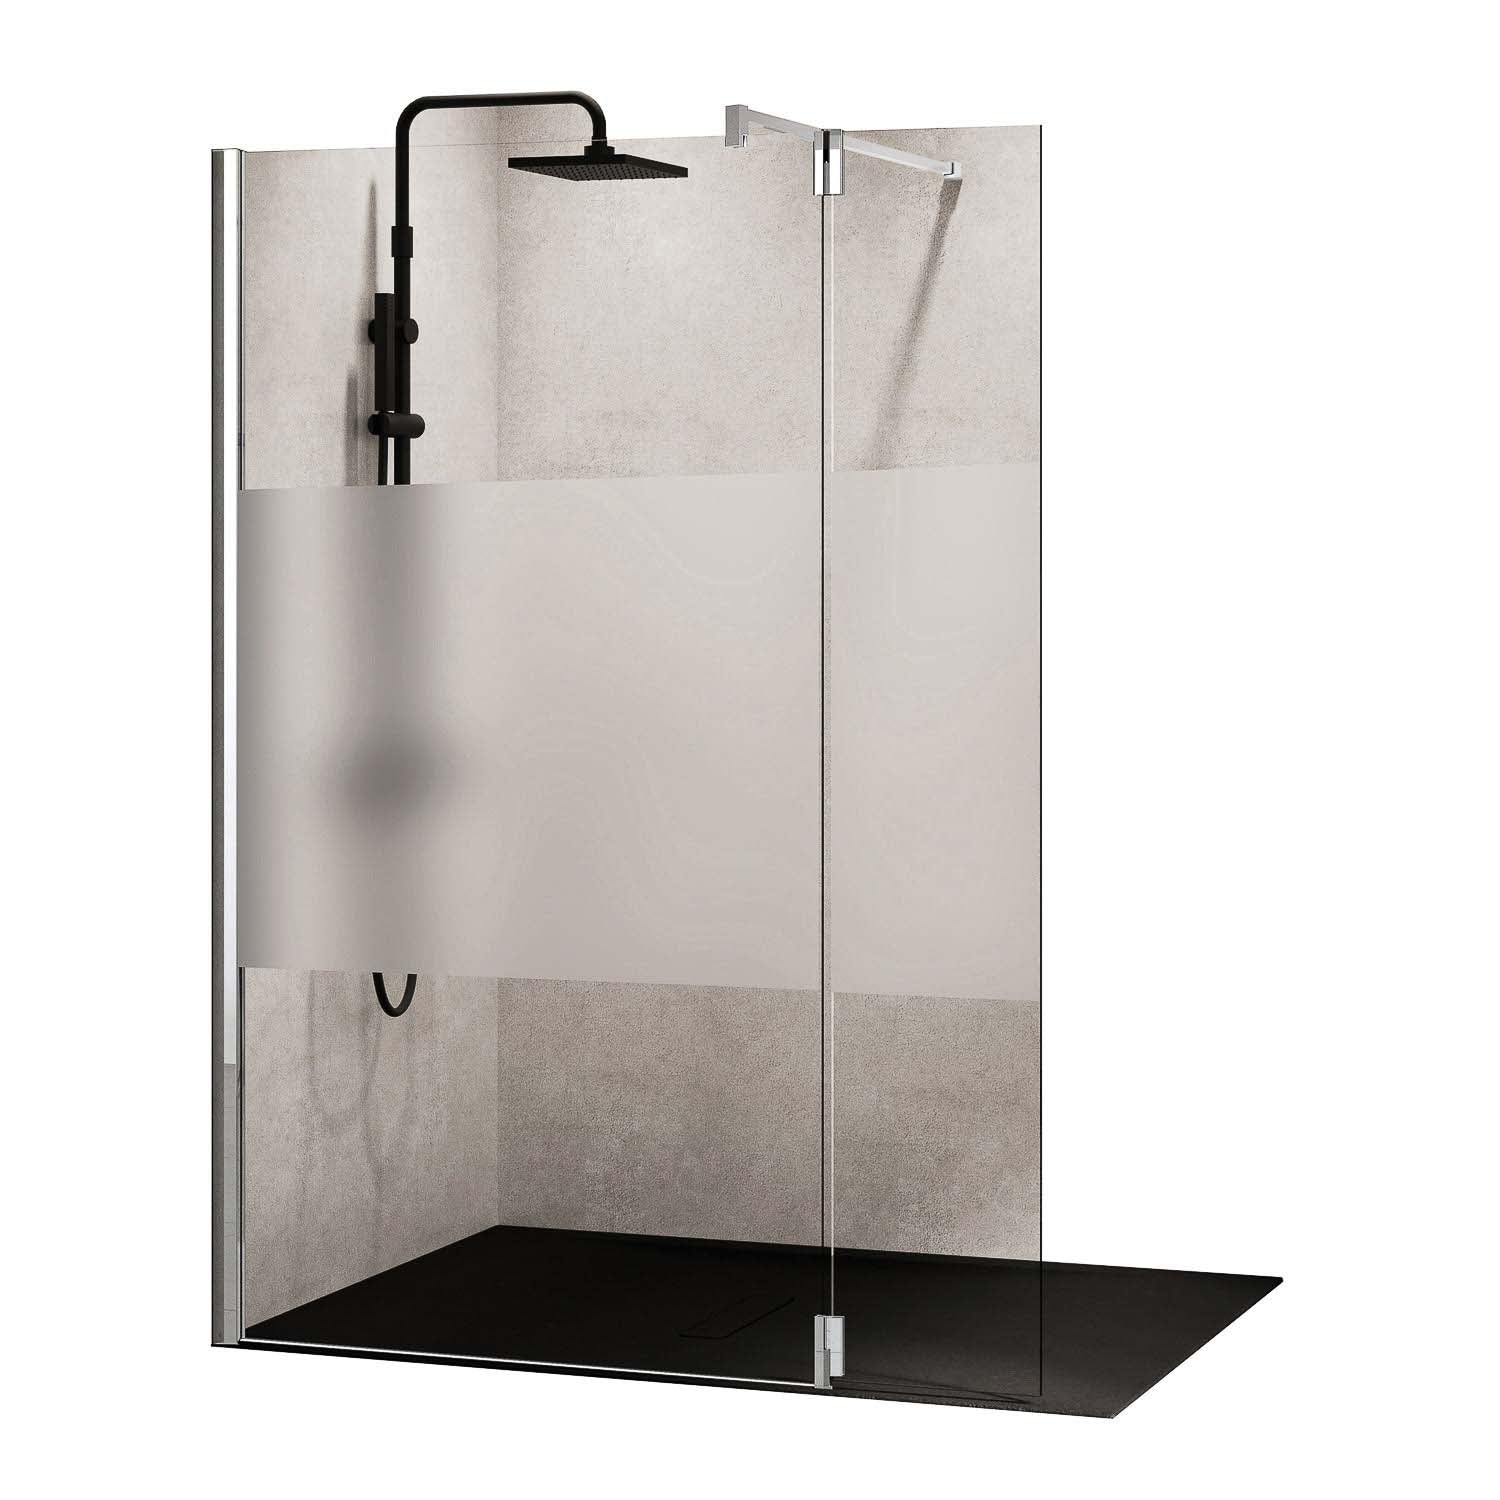 570-600mm Ergo Wet Room Screen Satin Band Glass with a chrome finish on a white background